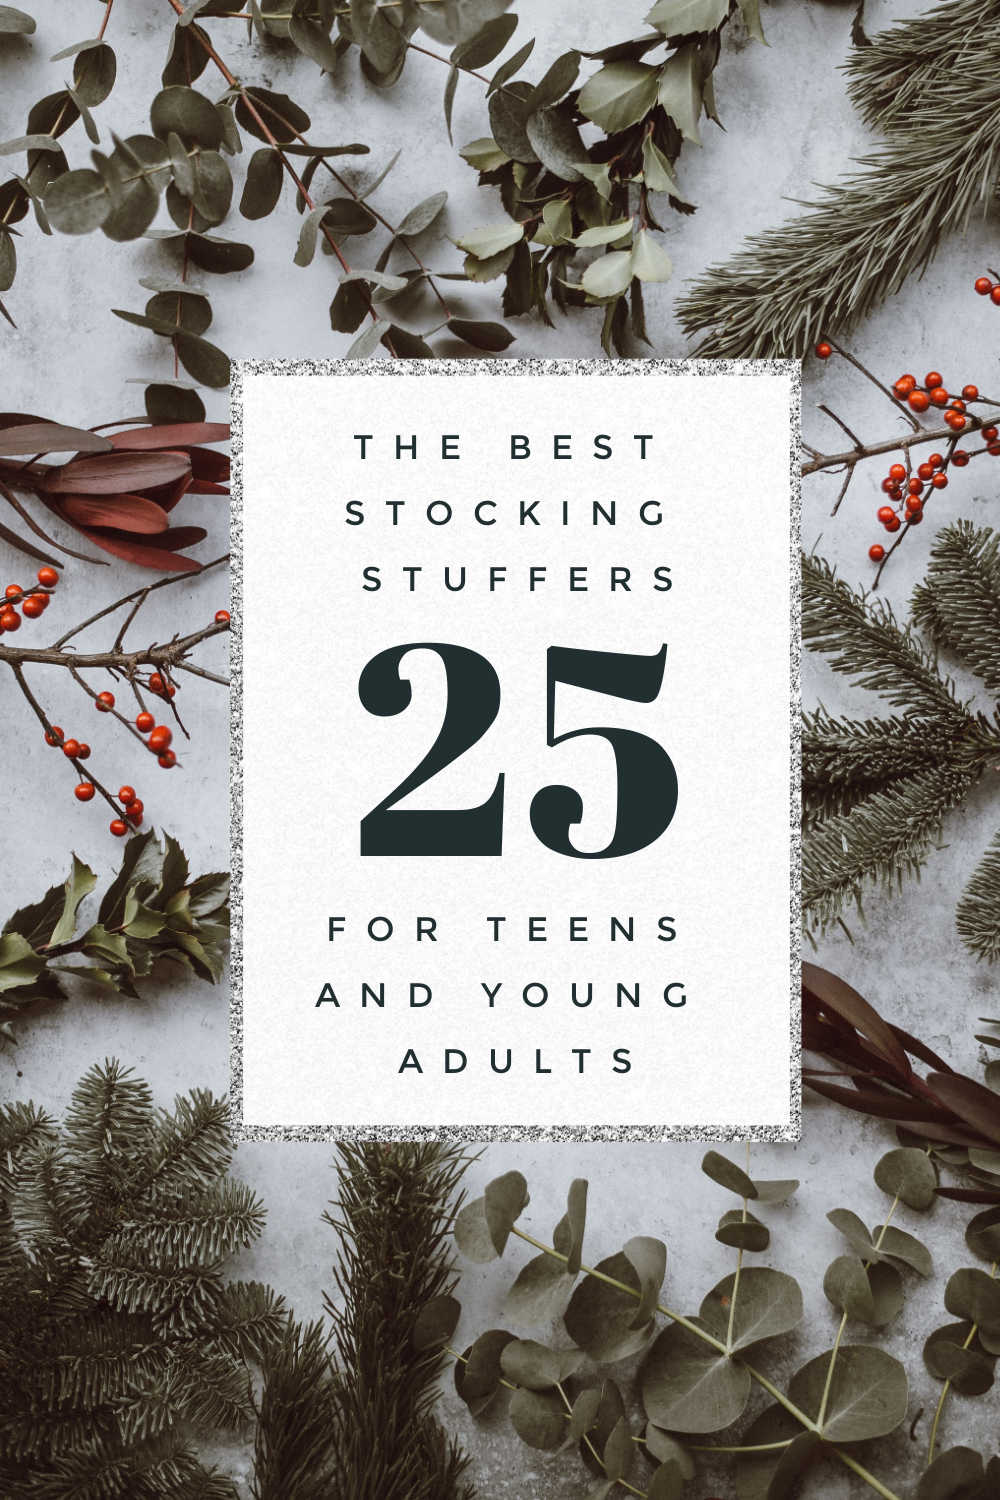 best stocking stuffers for teens and young adults